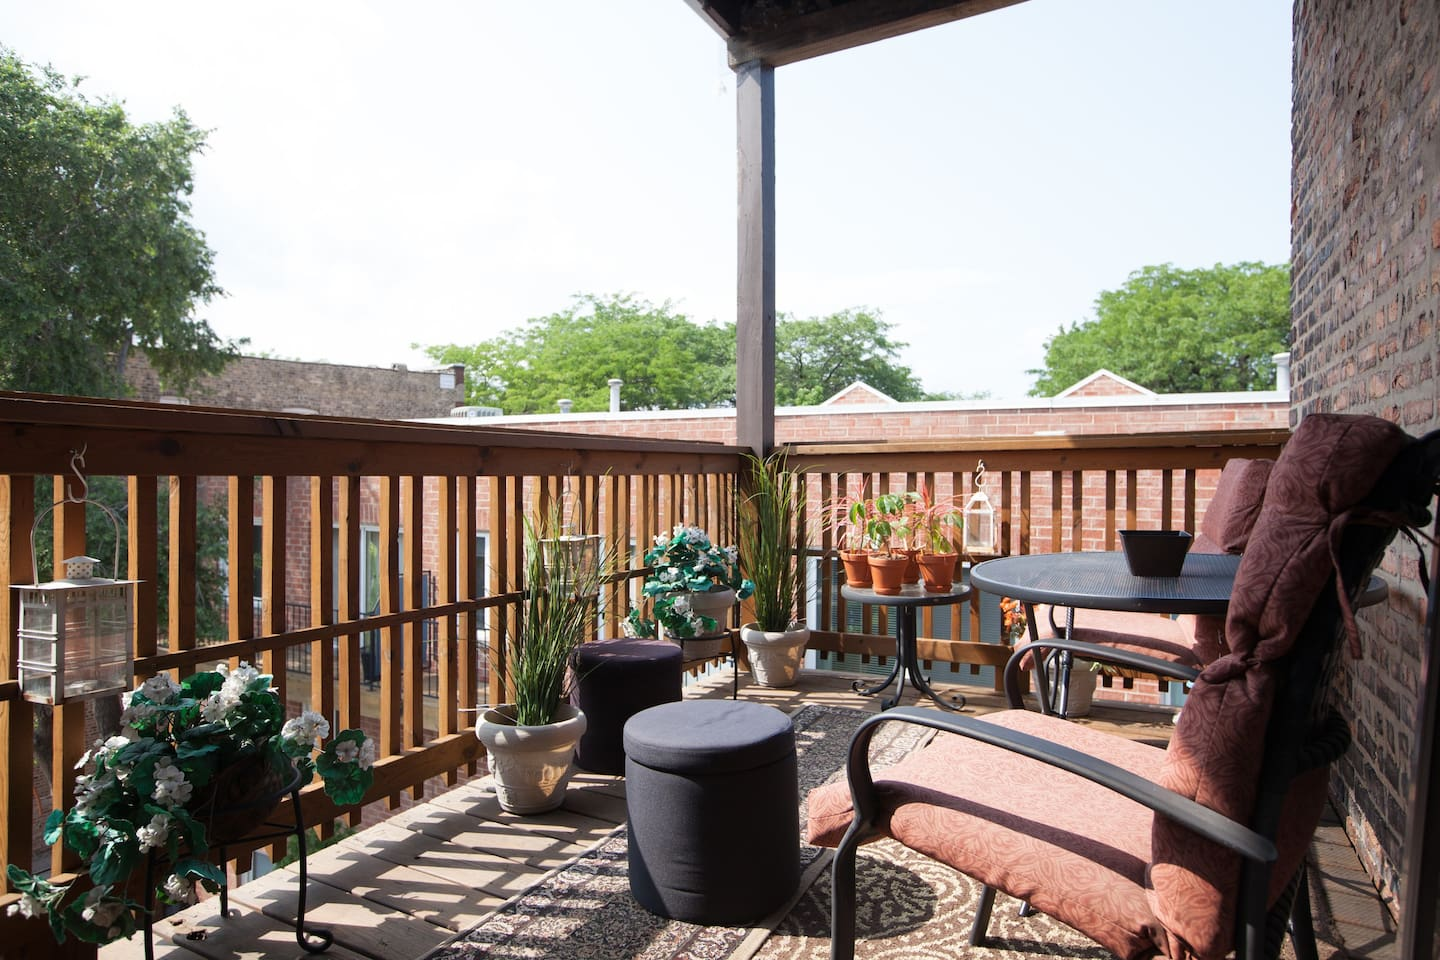 Take a moment to enjoy the bright sky from your private deck!  Glorious!